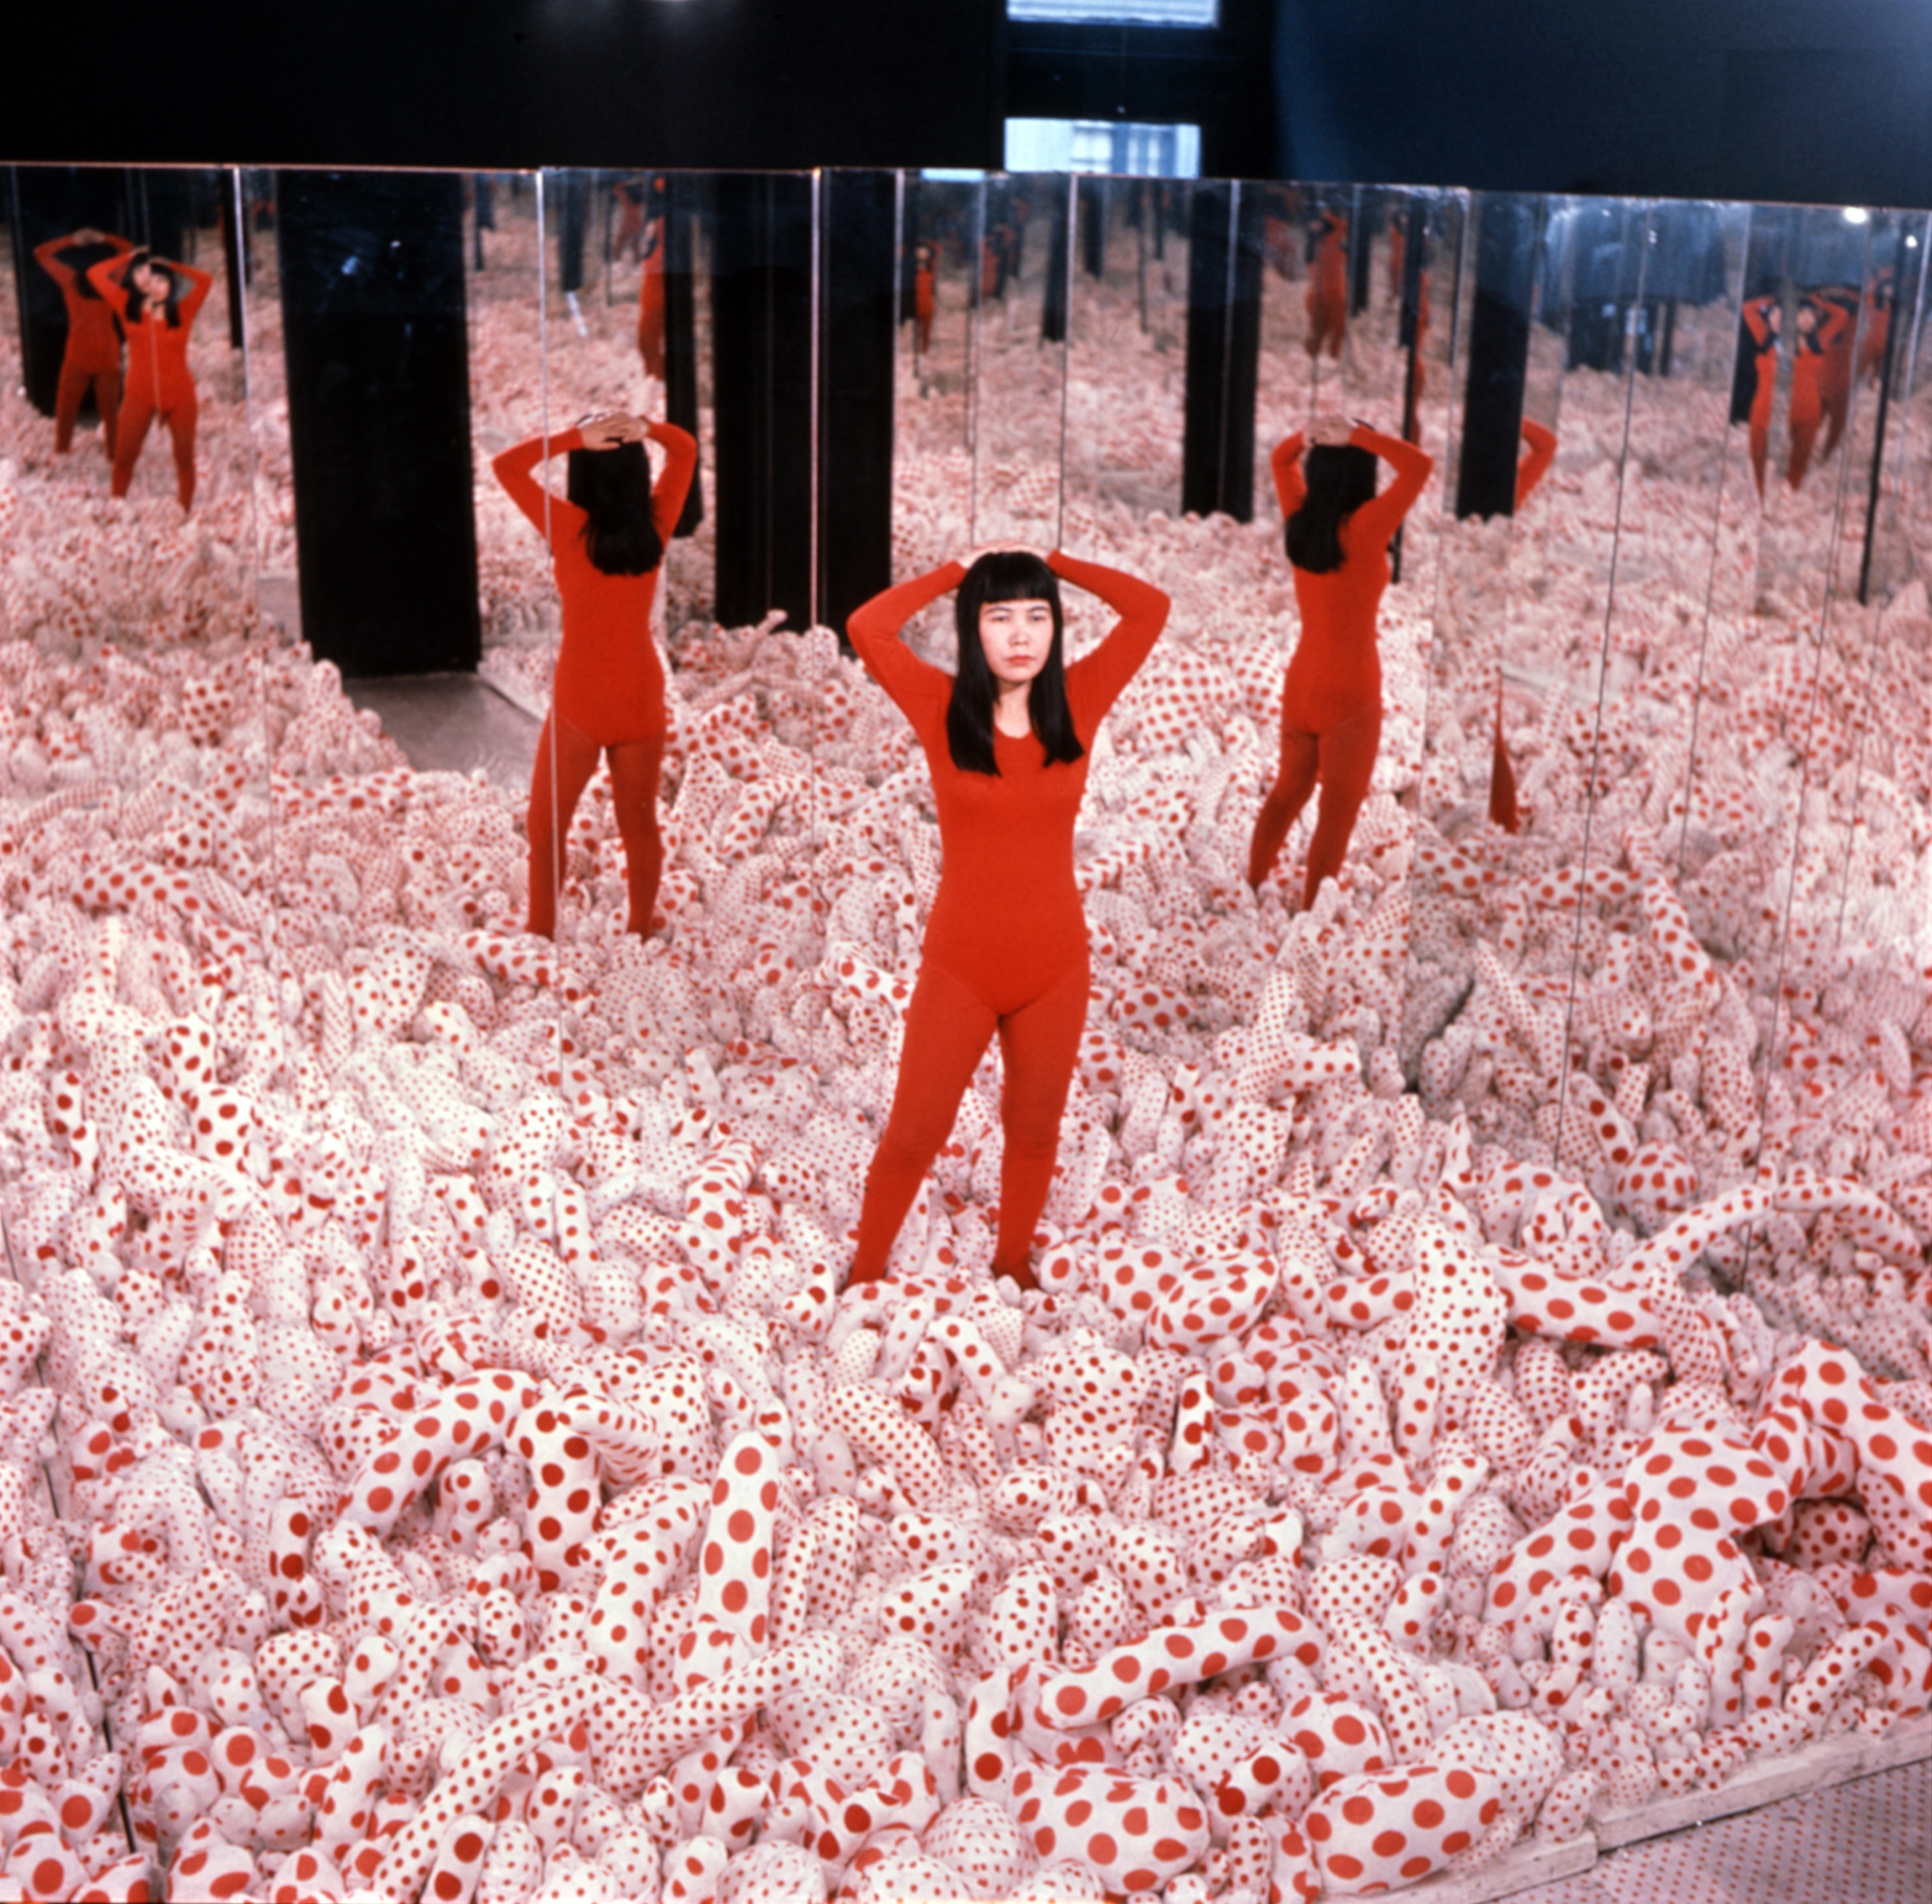 The roughly chronological exhibit will begin with Infinity Mirror Room    Phalli s Field  1965 2016  a field full of hundreds of red spotted phallic  tubers. There s an entire Infinity Mirror Room exhibition coming to the Broad